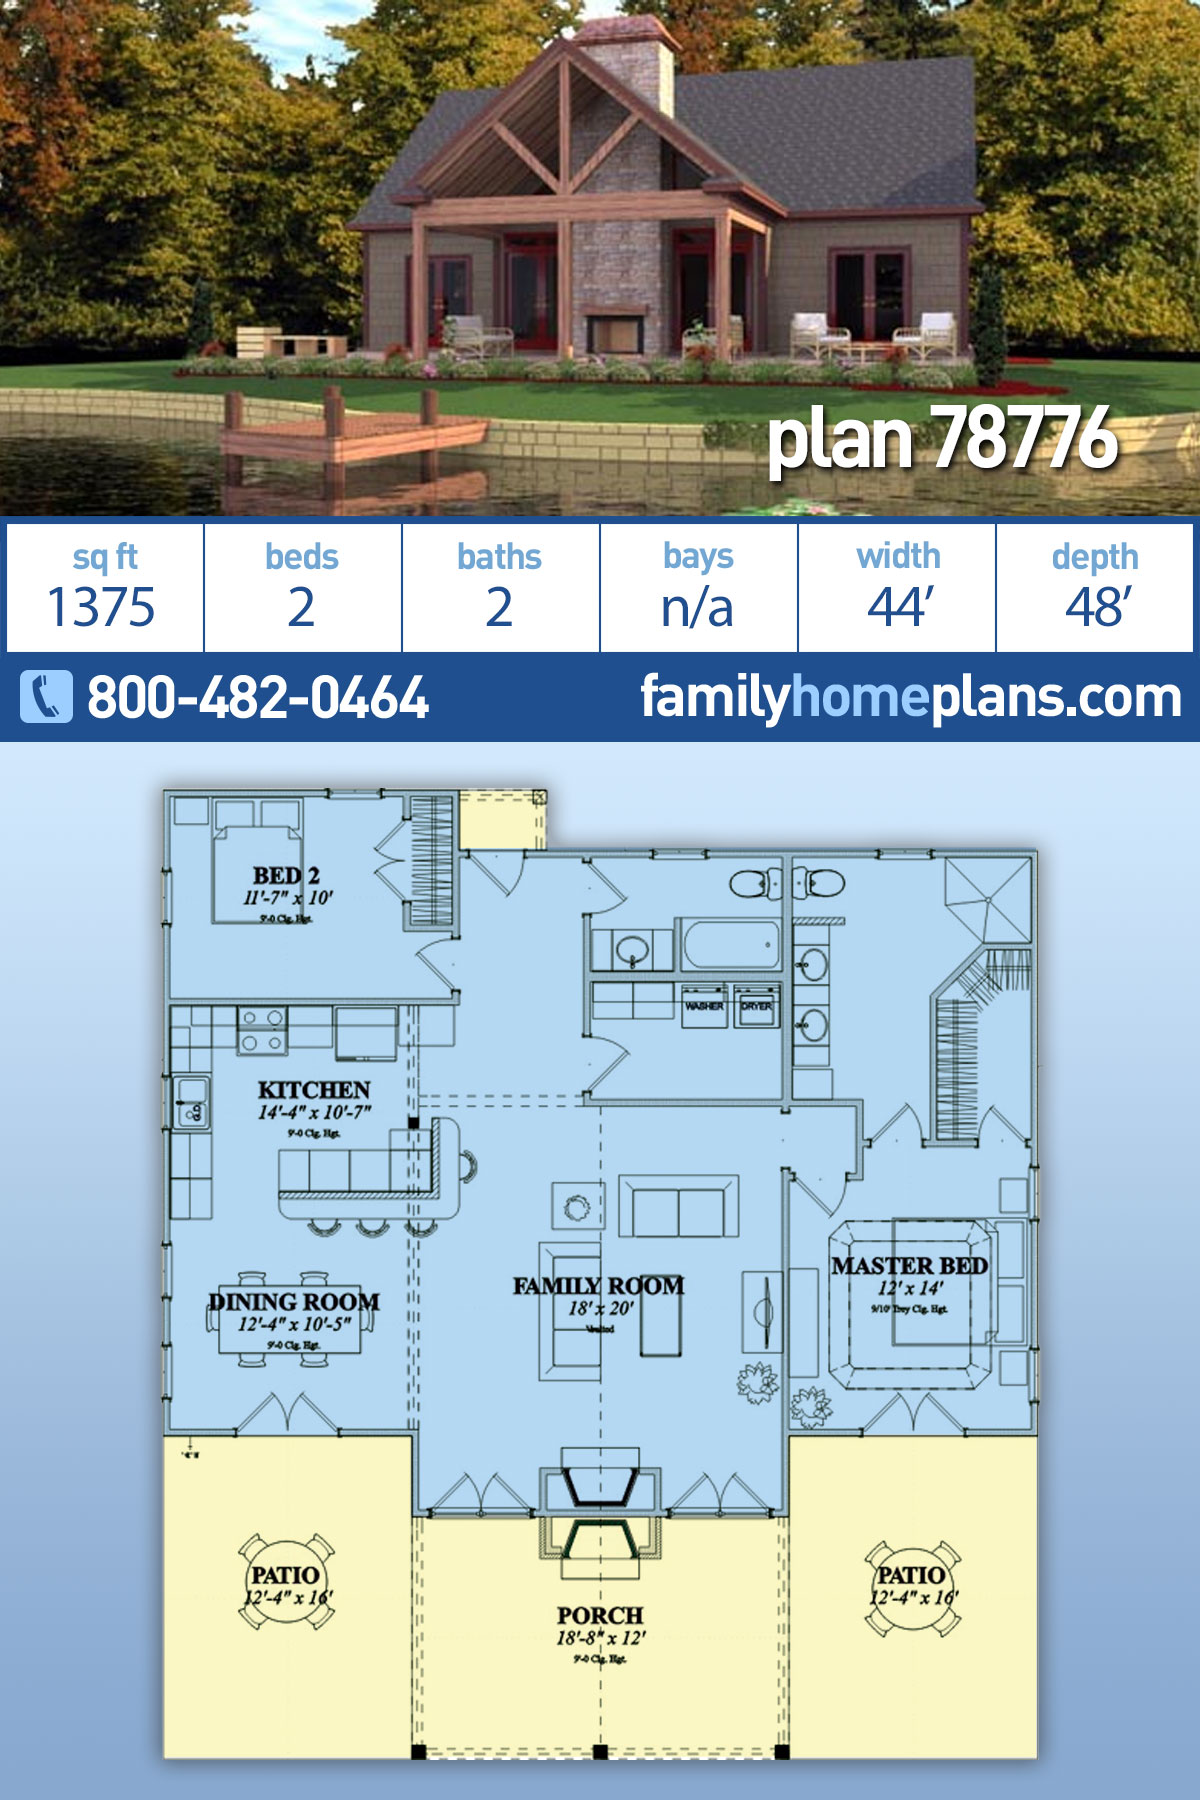 Bungalow House Plan 78776 with 2 Beds, 2 Baths